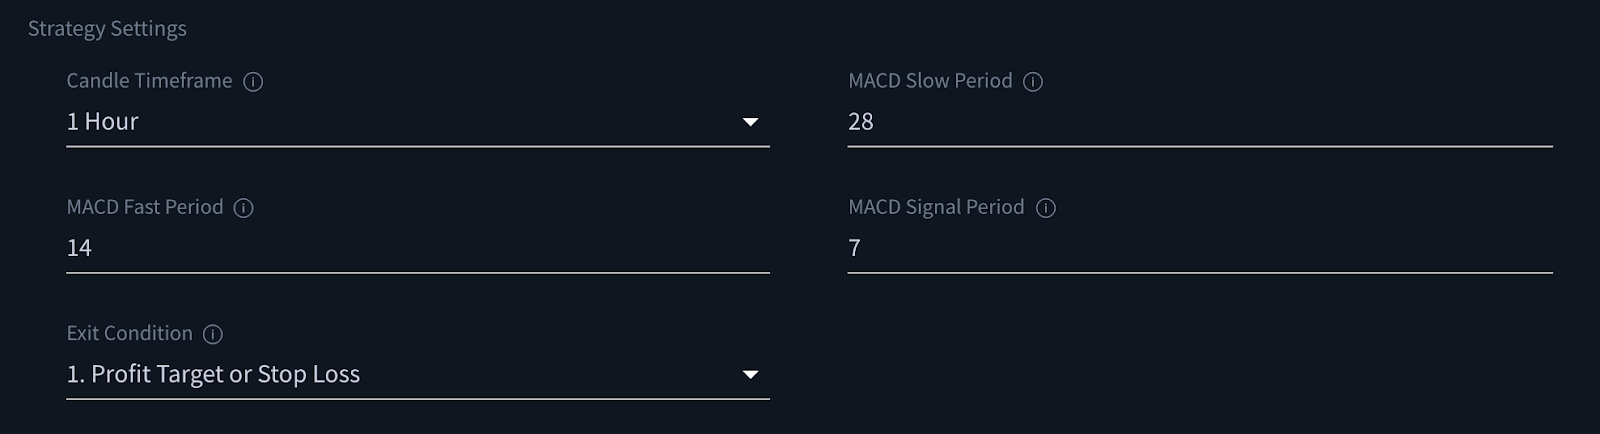 MACD_QUADENCY_BOT_STRATEGY_SETTINGS_CANDLE